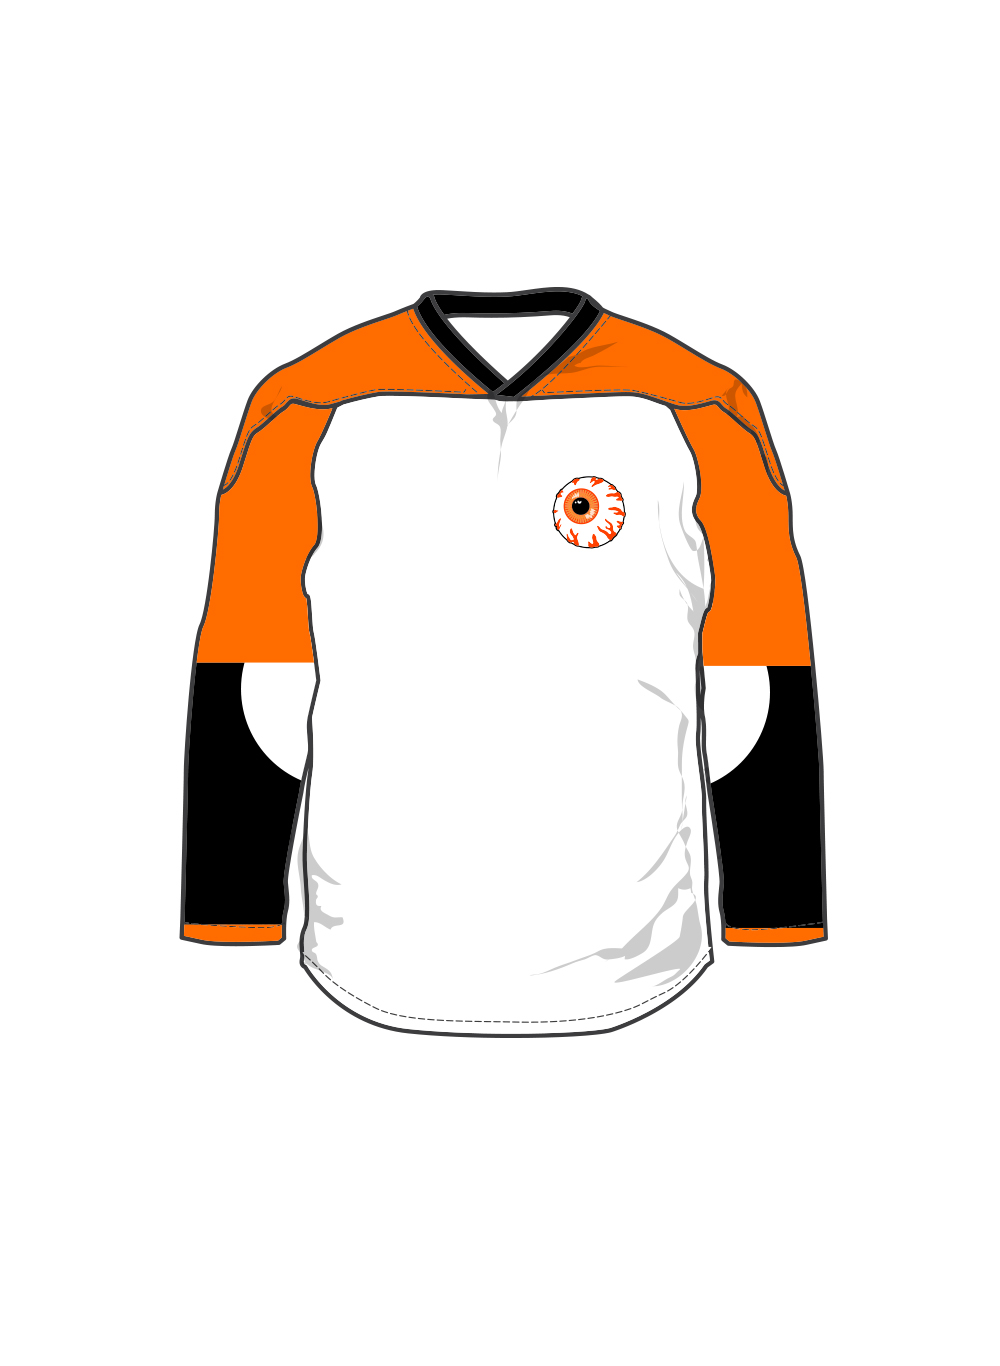 Keep Watch Hockey Jersey